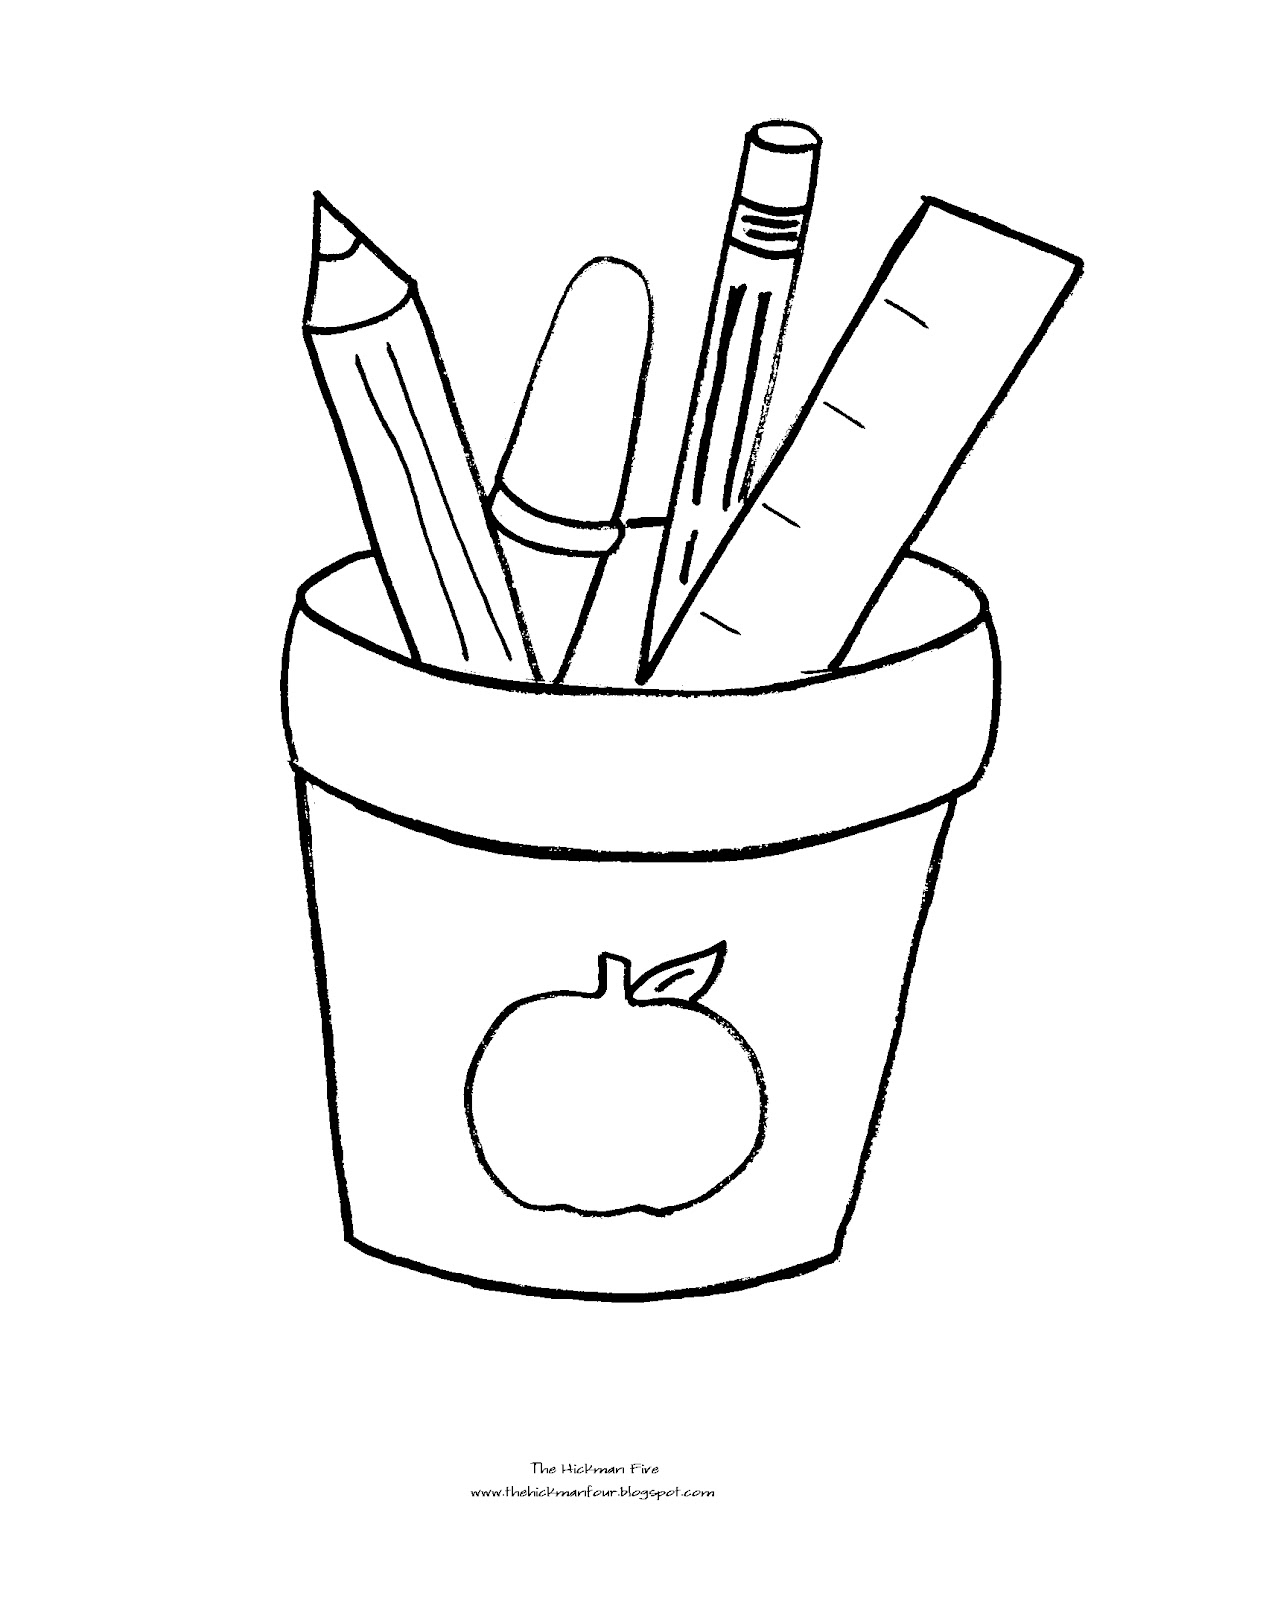 coloring school supplies school supplies coloring pages black and white free school supplies coloring